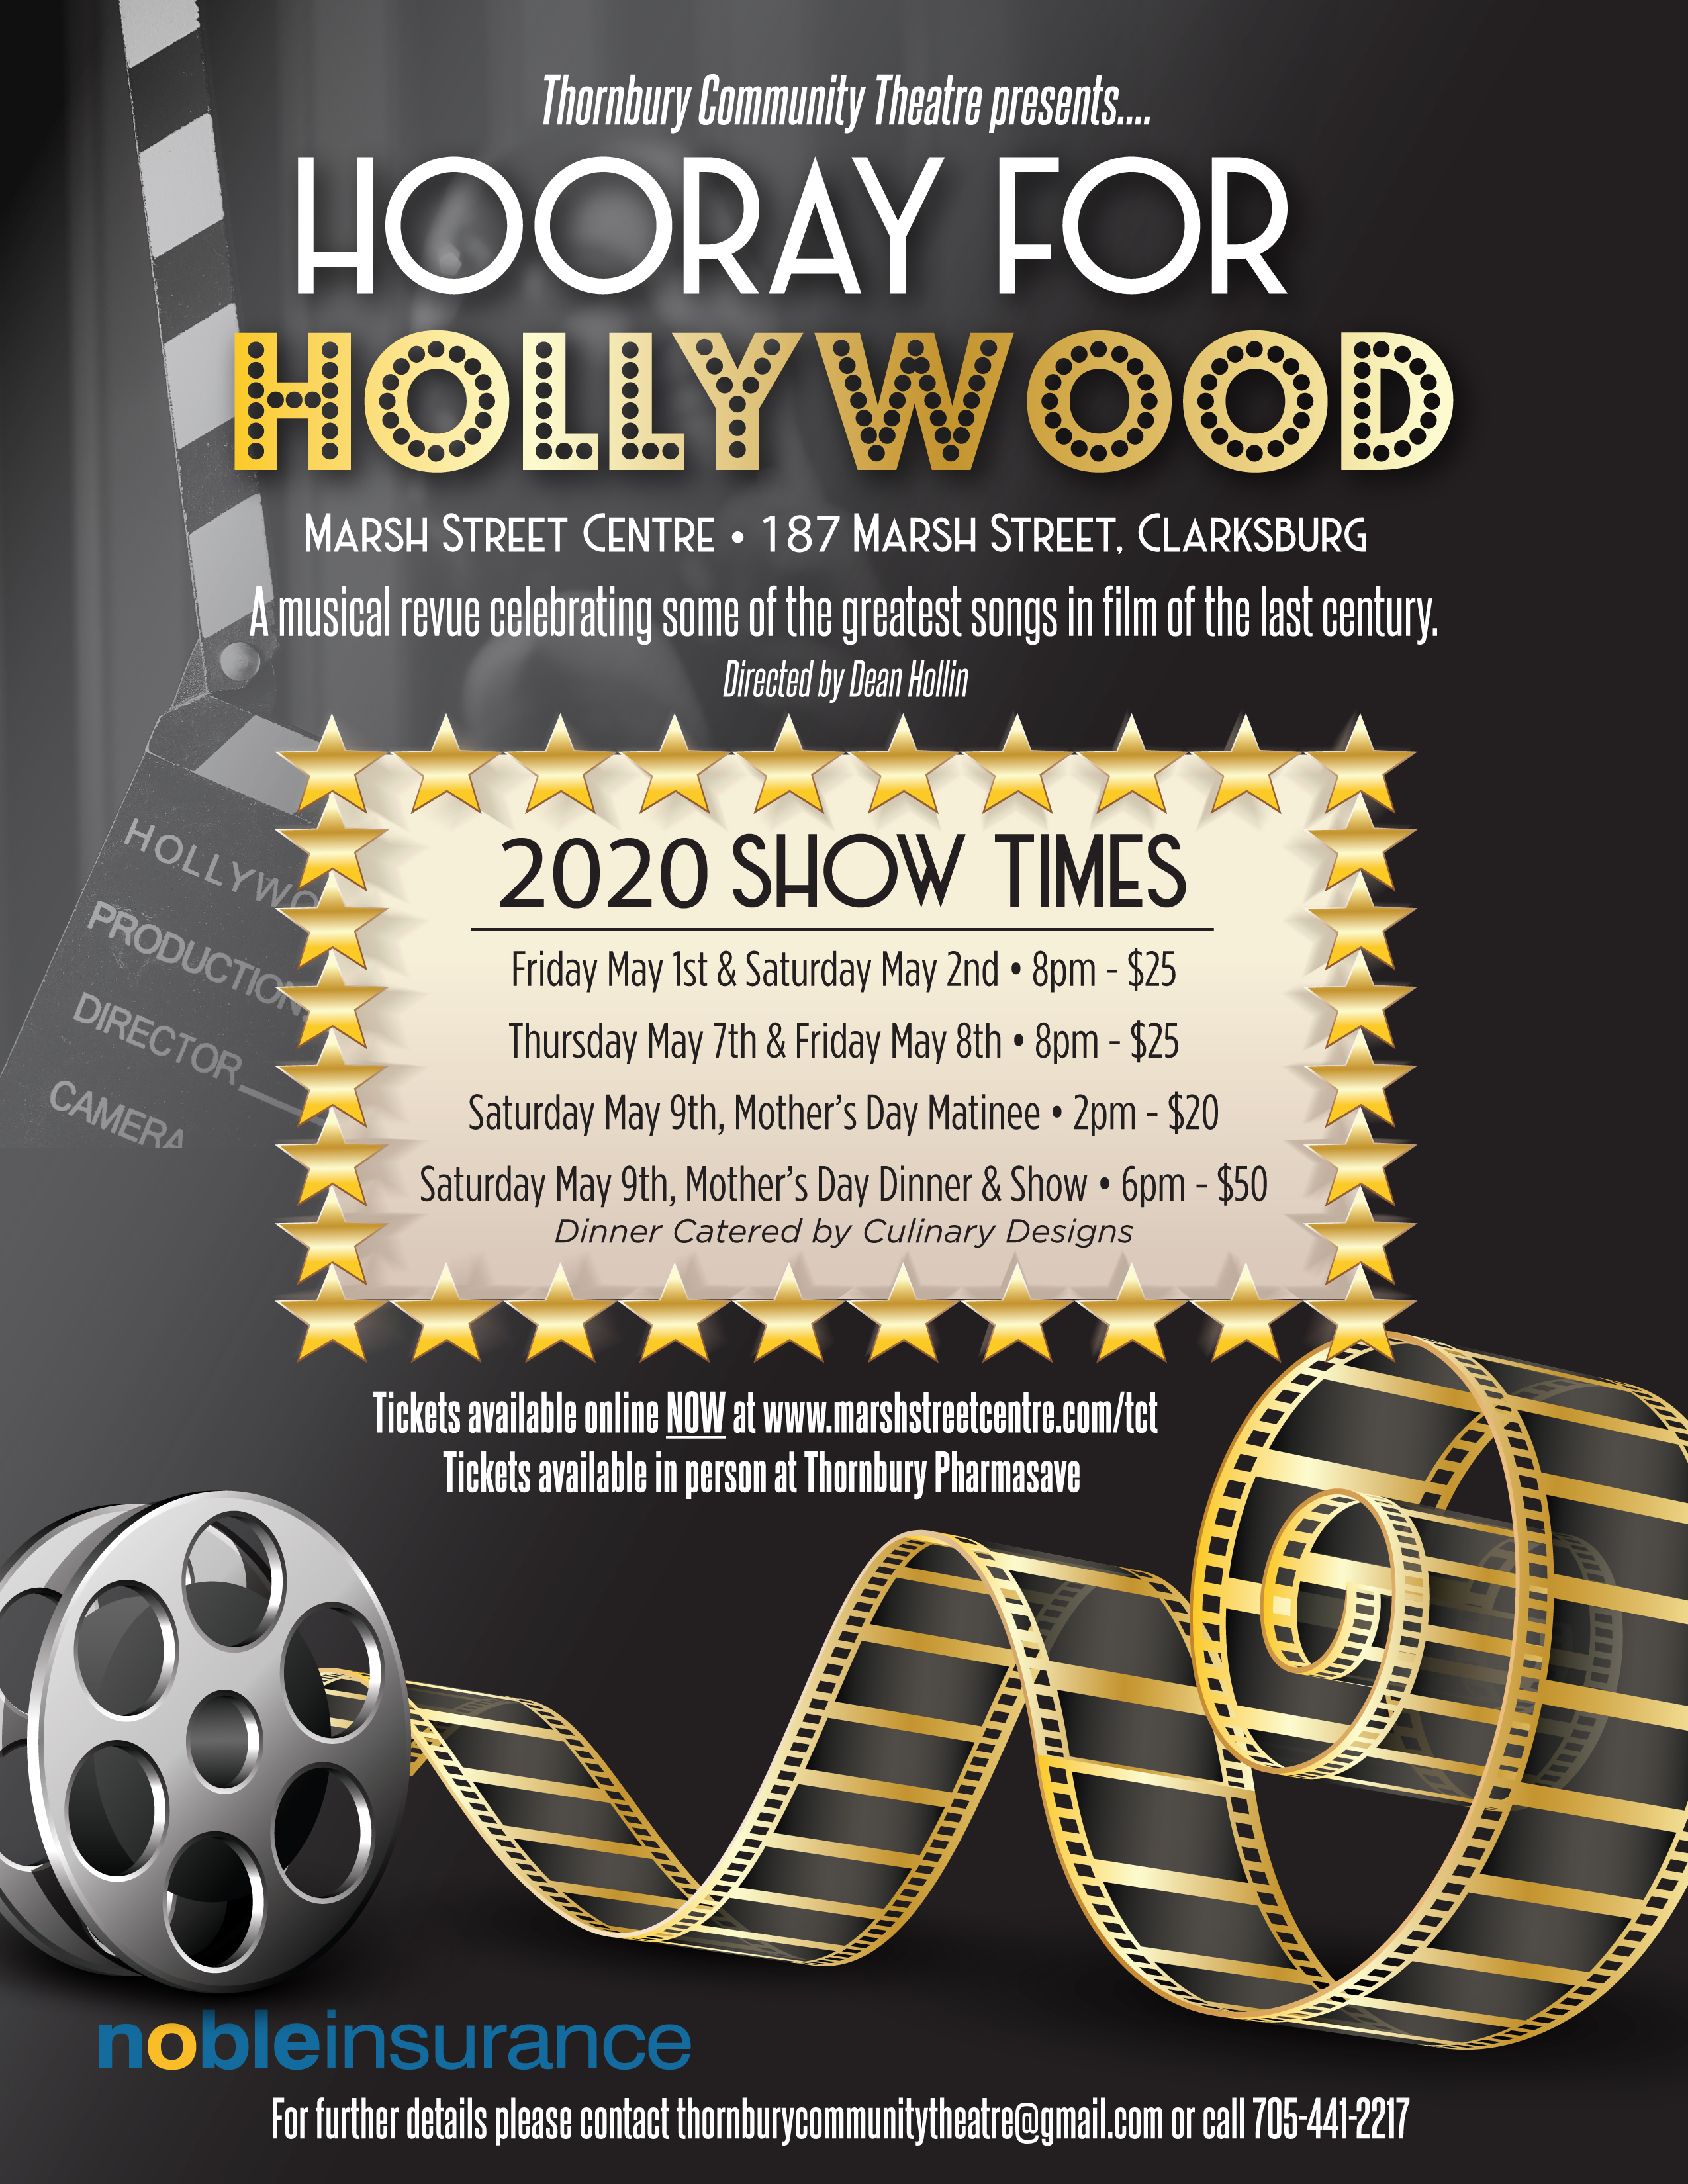 Theatre Show: Hooray for Hollywood Show #4 Friday, Nov 6 @ 8pm